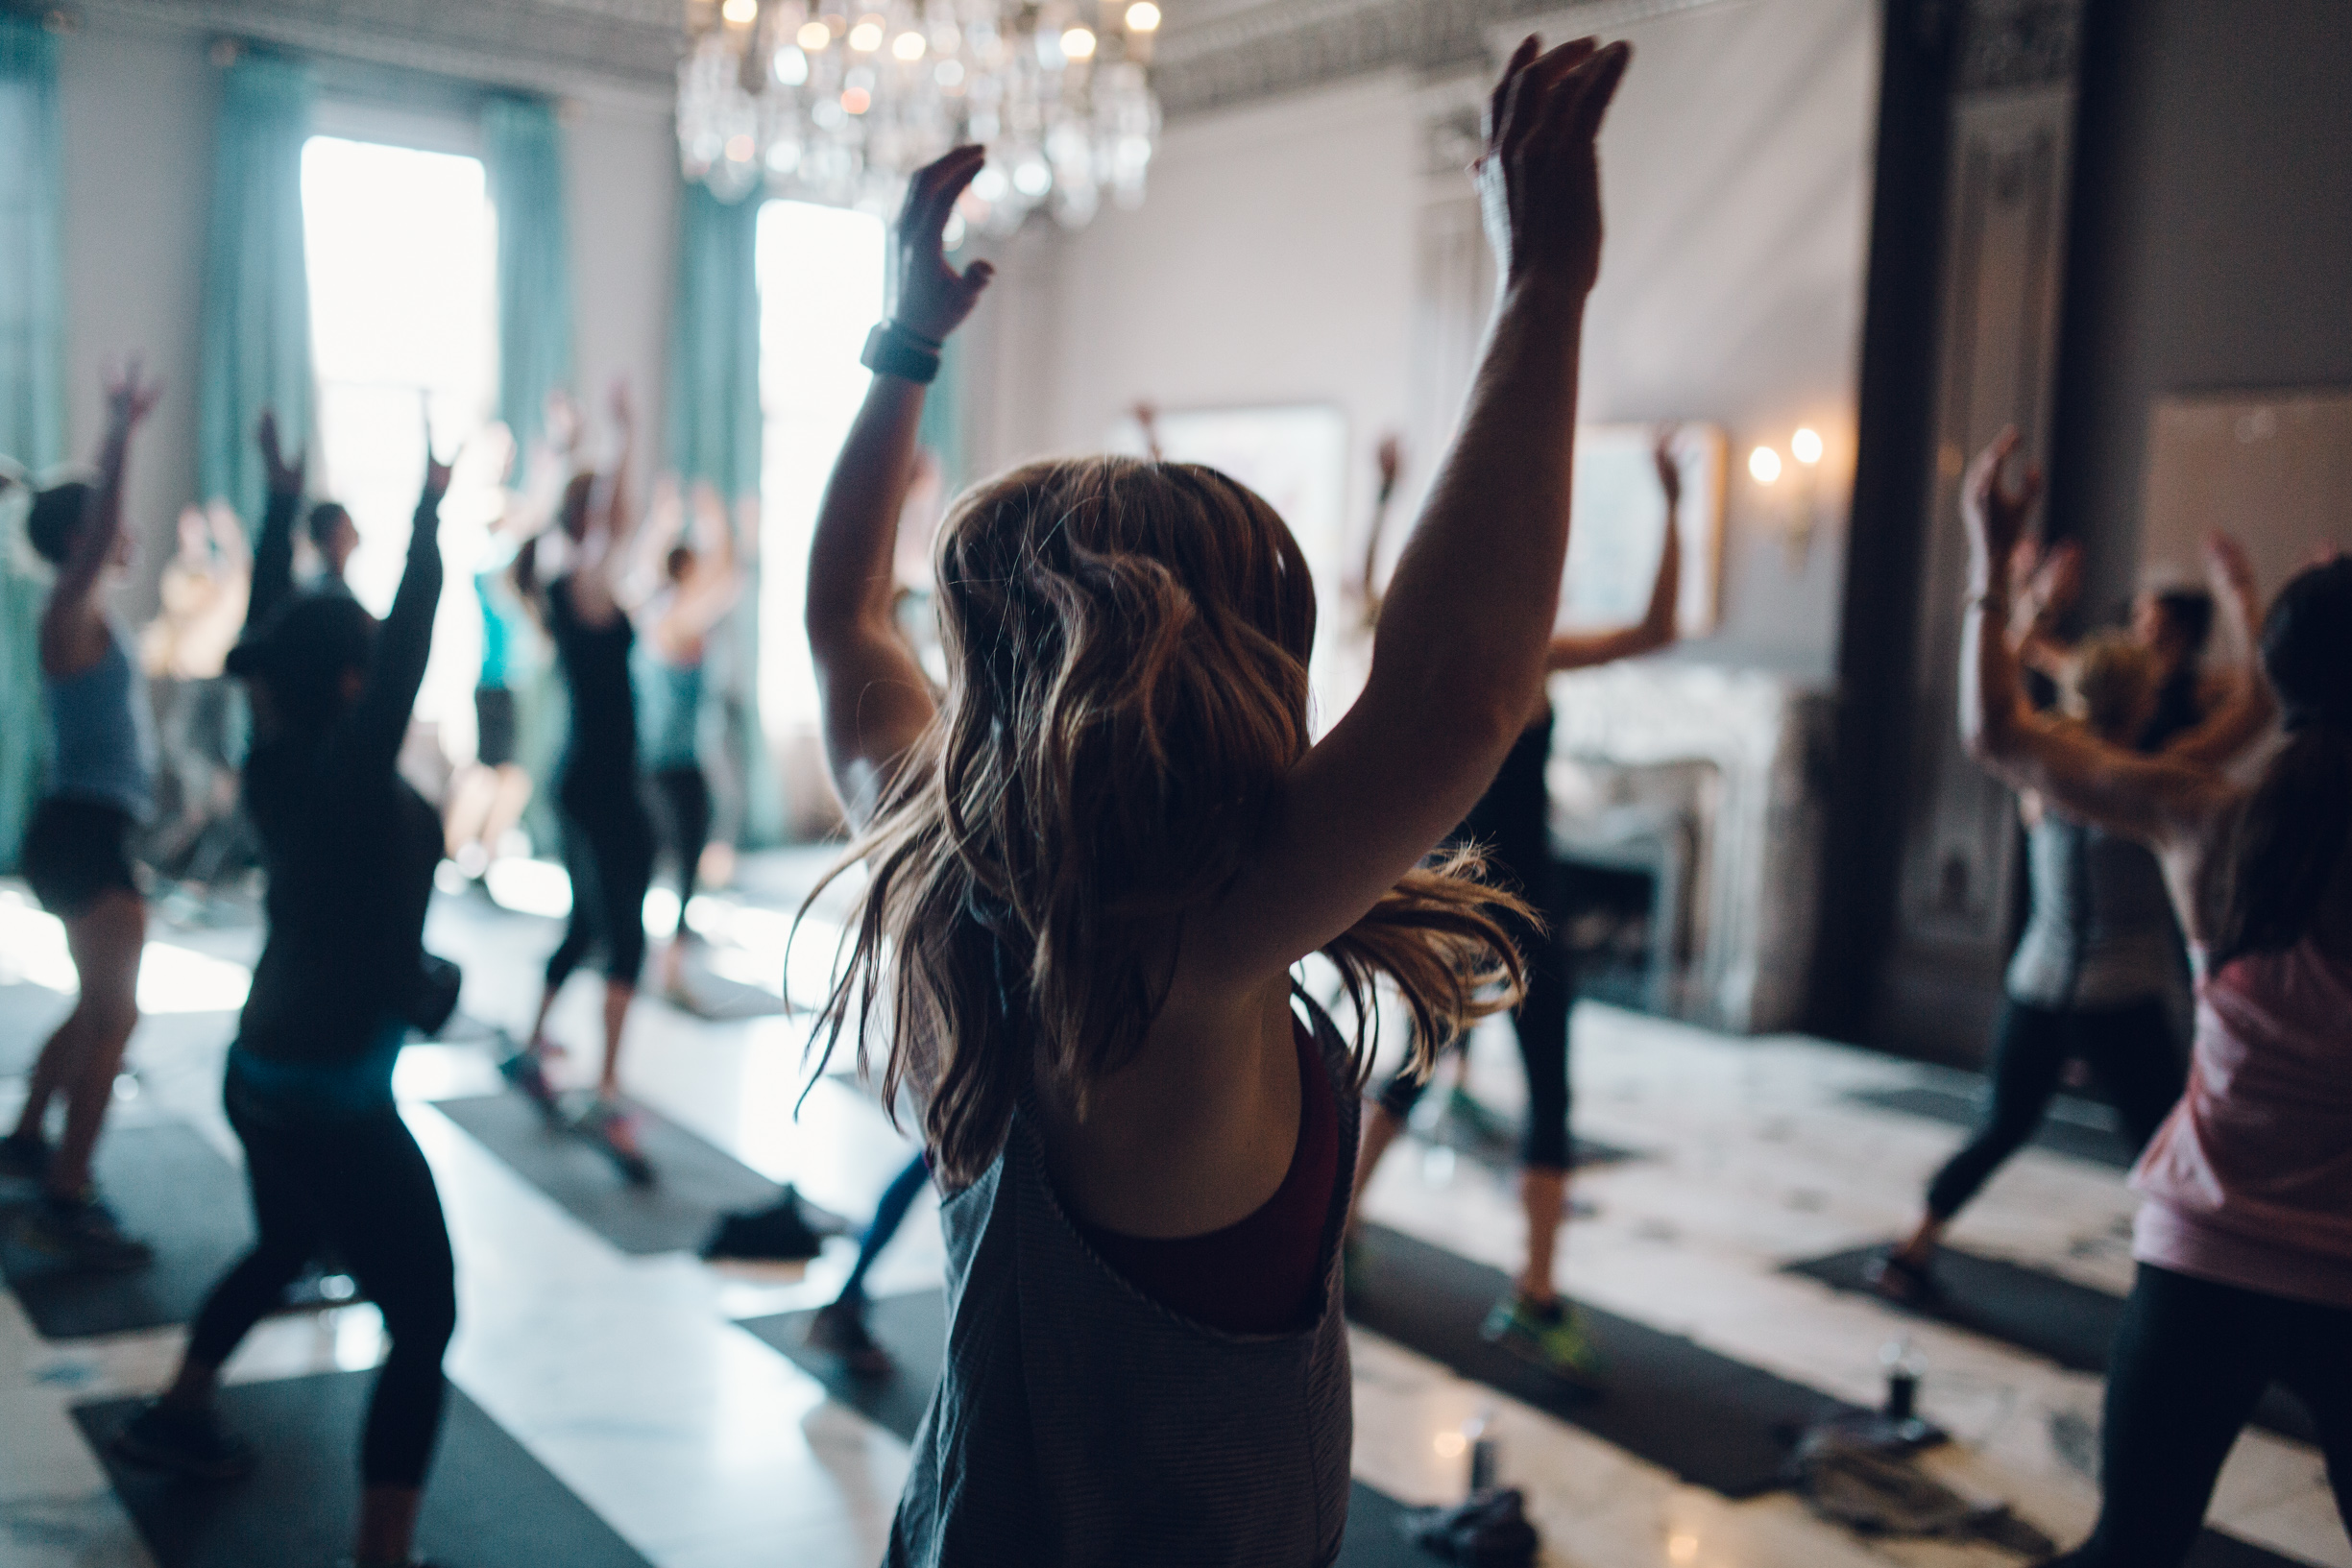 Join us January 27, as we leave the studio to convert downtown Baton Rouge into a morning of wellness. We will start with a workout led by our founder Nicole Williamson followed by a Magpie Cafe curated brunch!  Purchase your ticket  here !